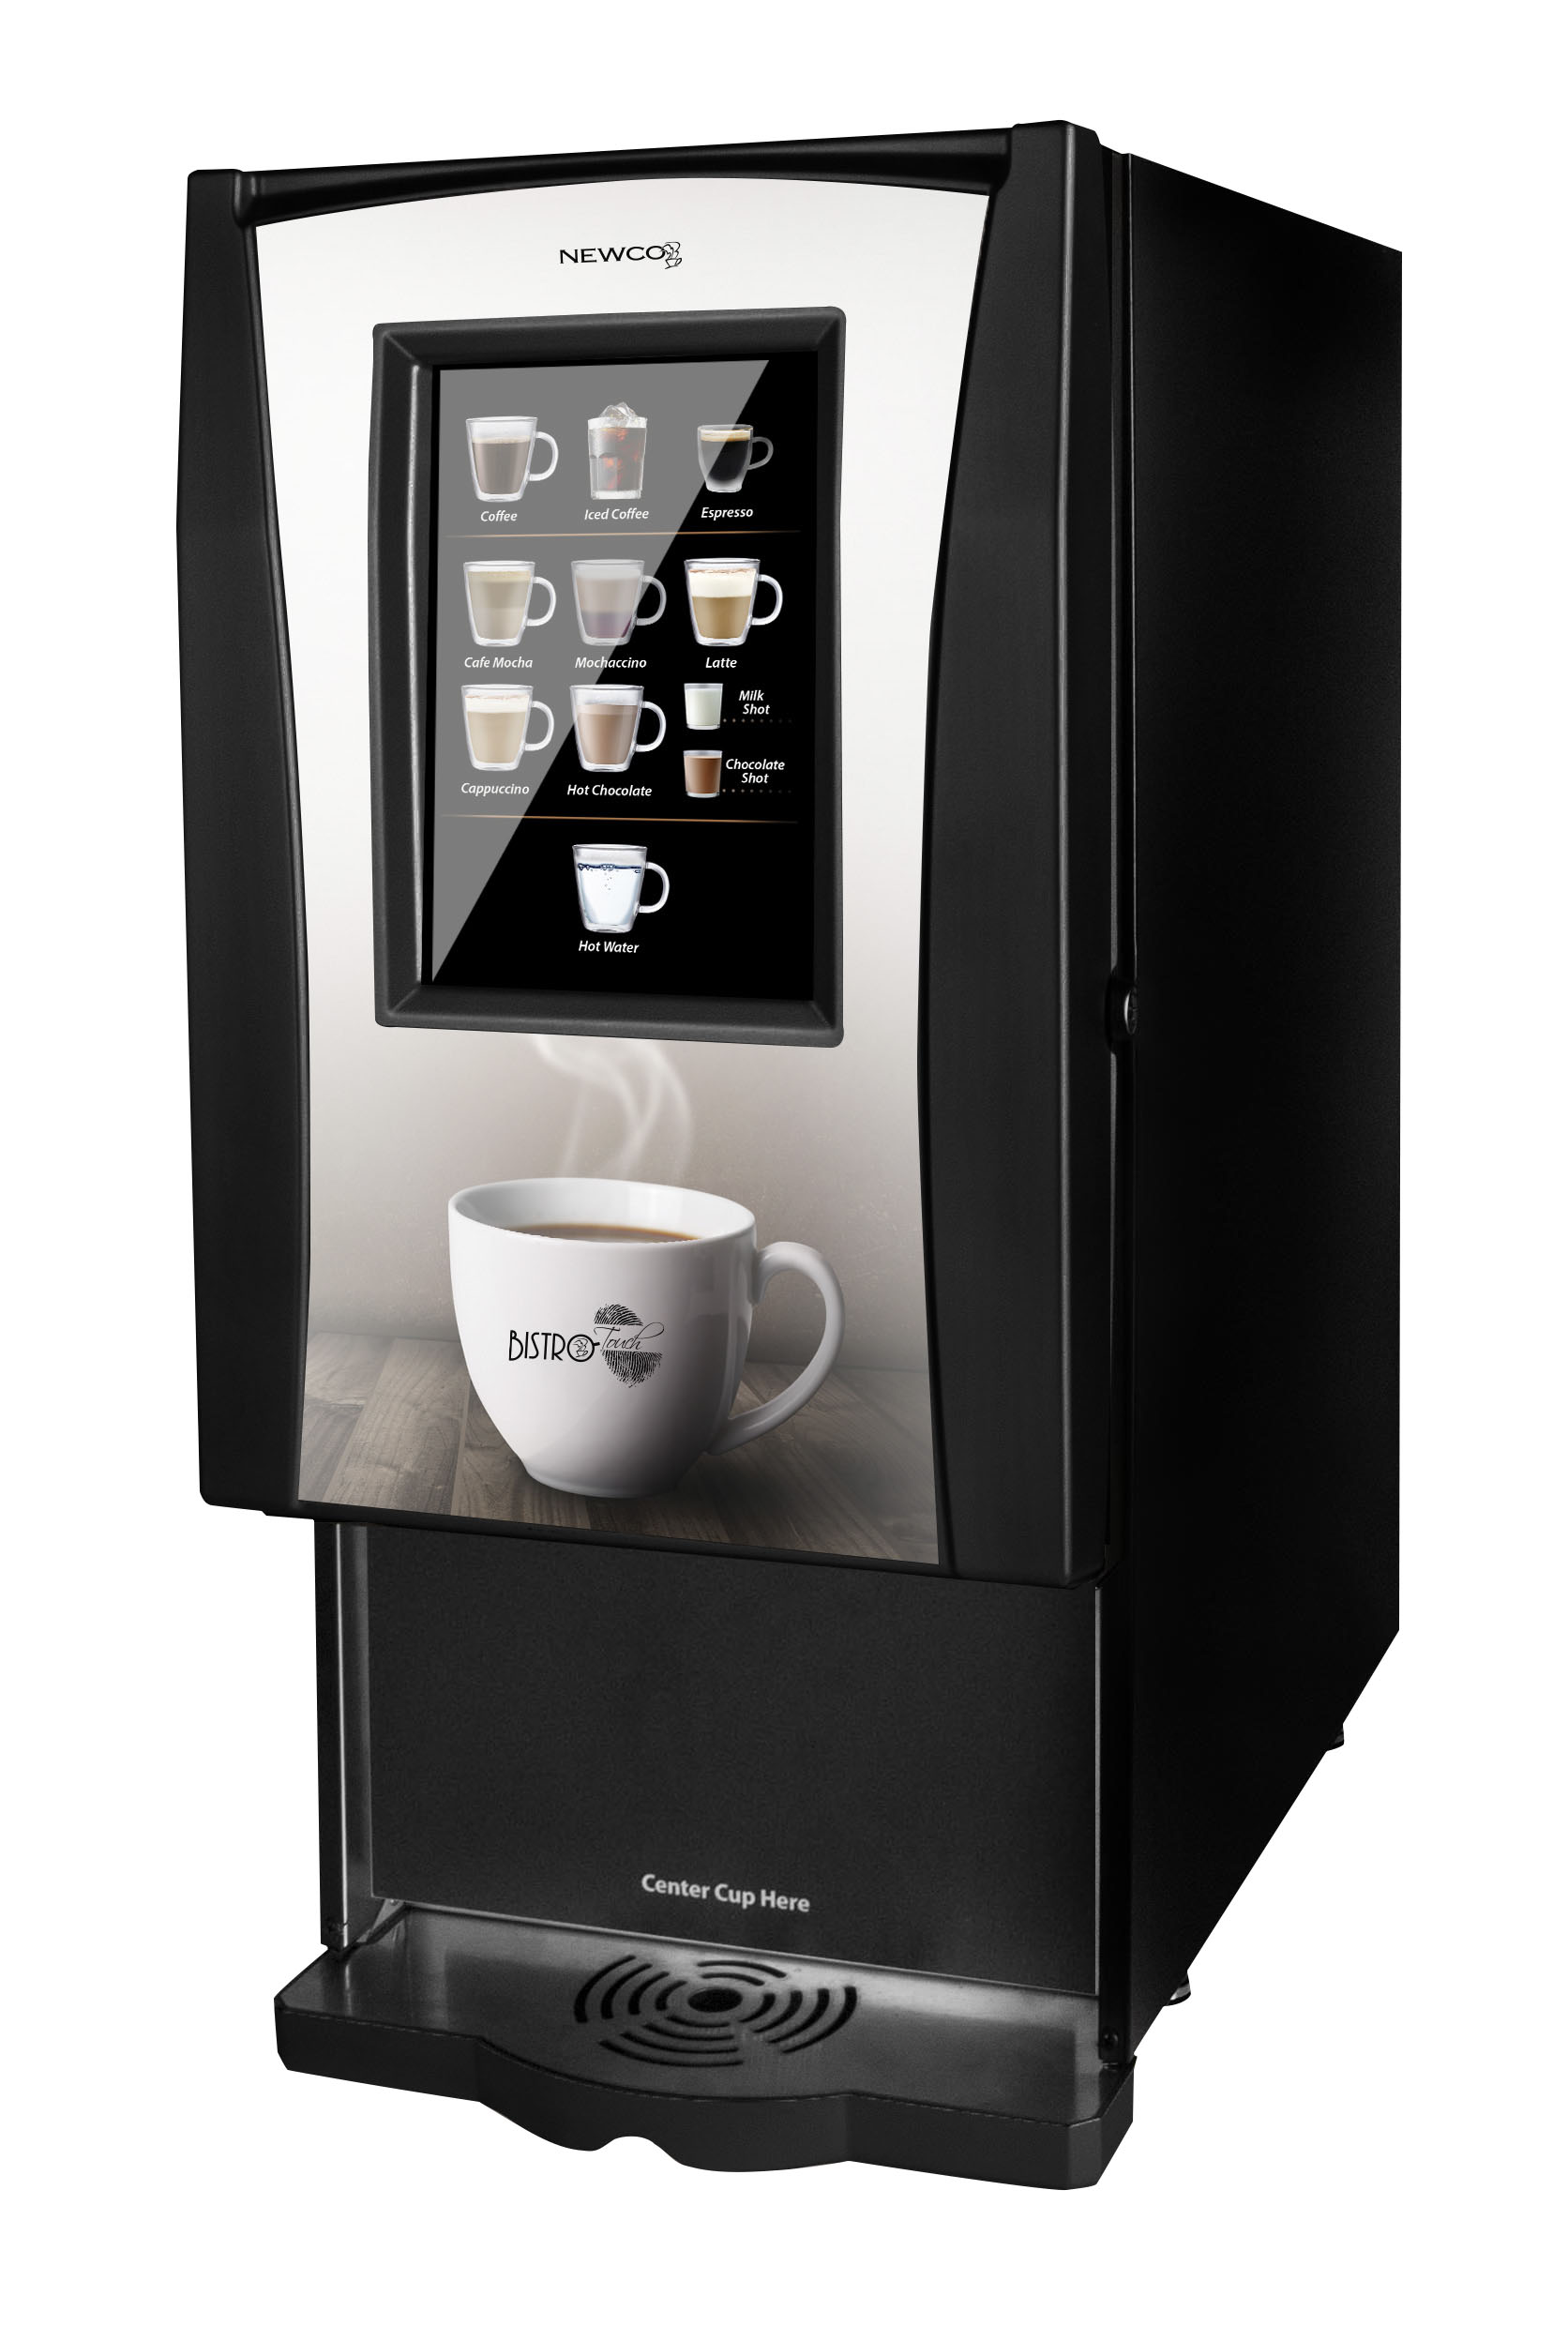 Machine A Cafe Bistro Touch Newco Liquid Specialty Coffee Machine